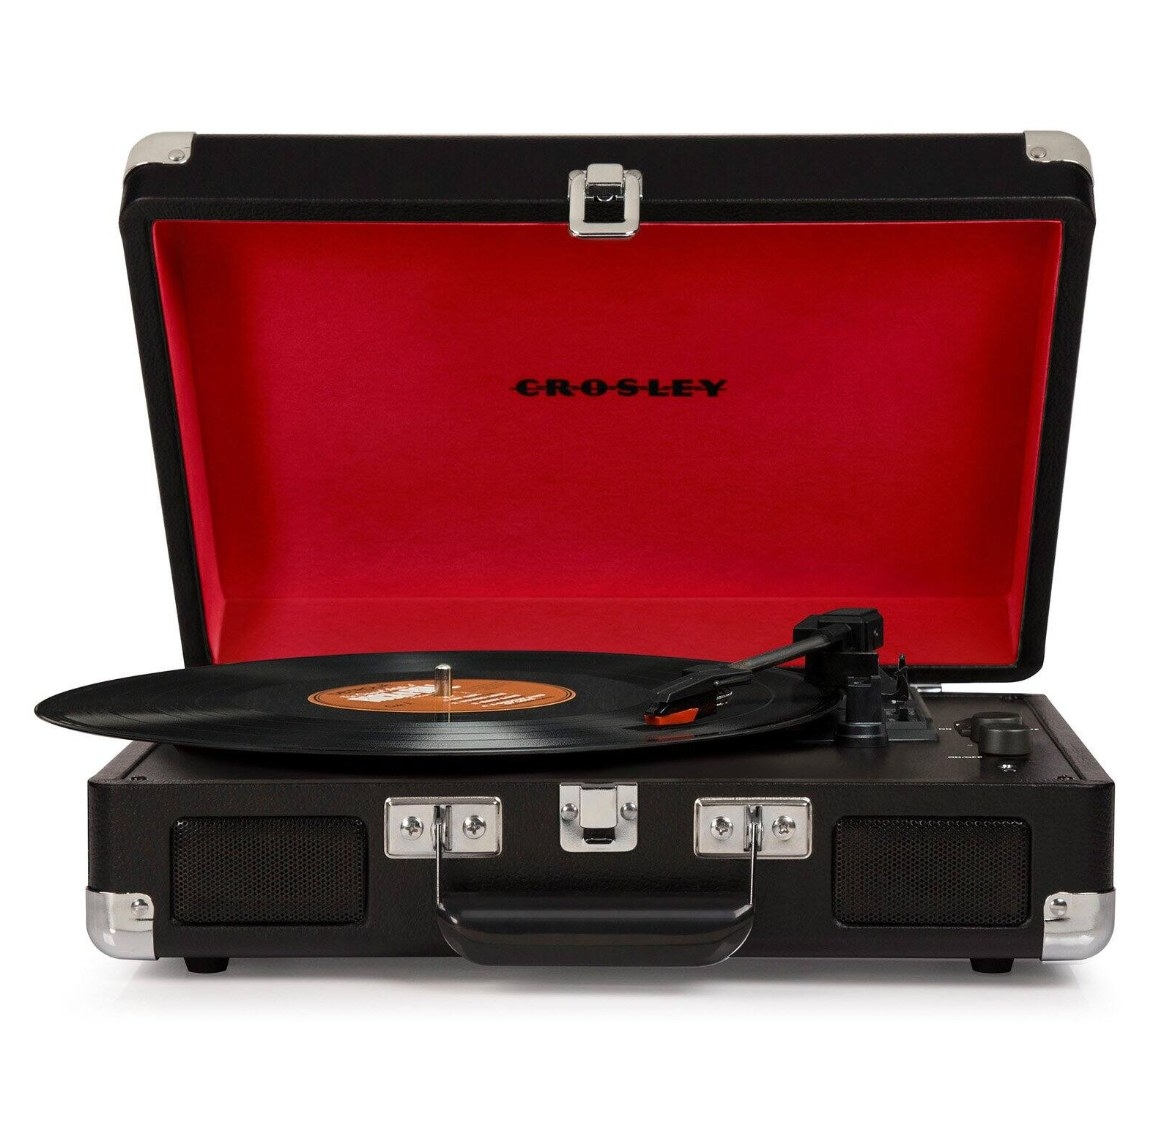 The Crosley Cruiser Deluxe record player in black